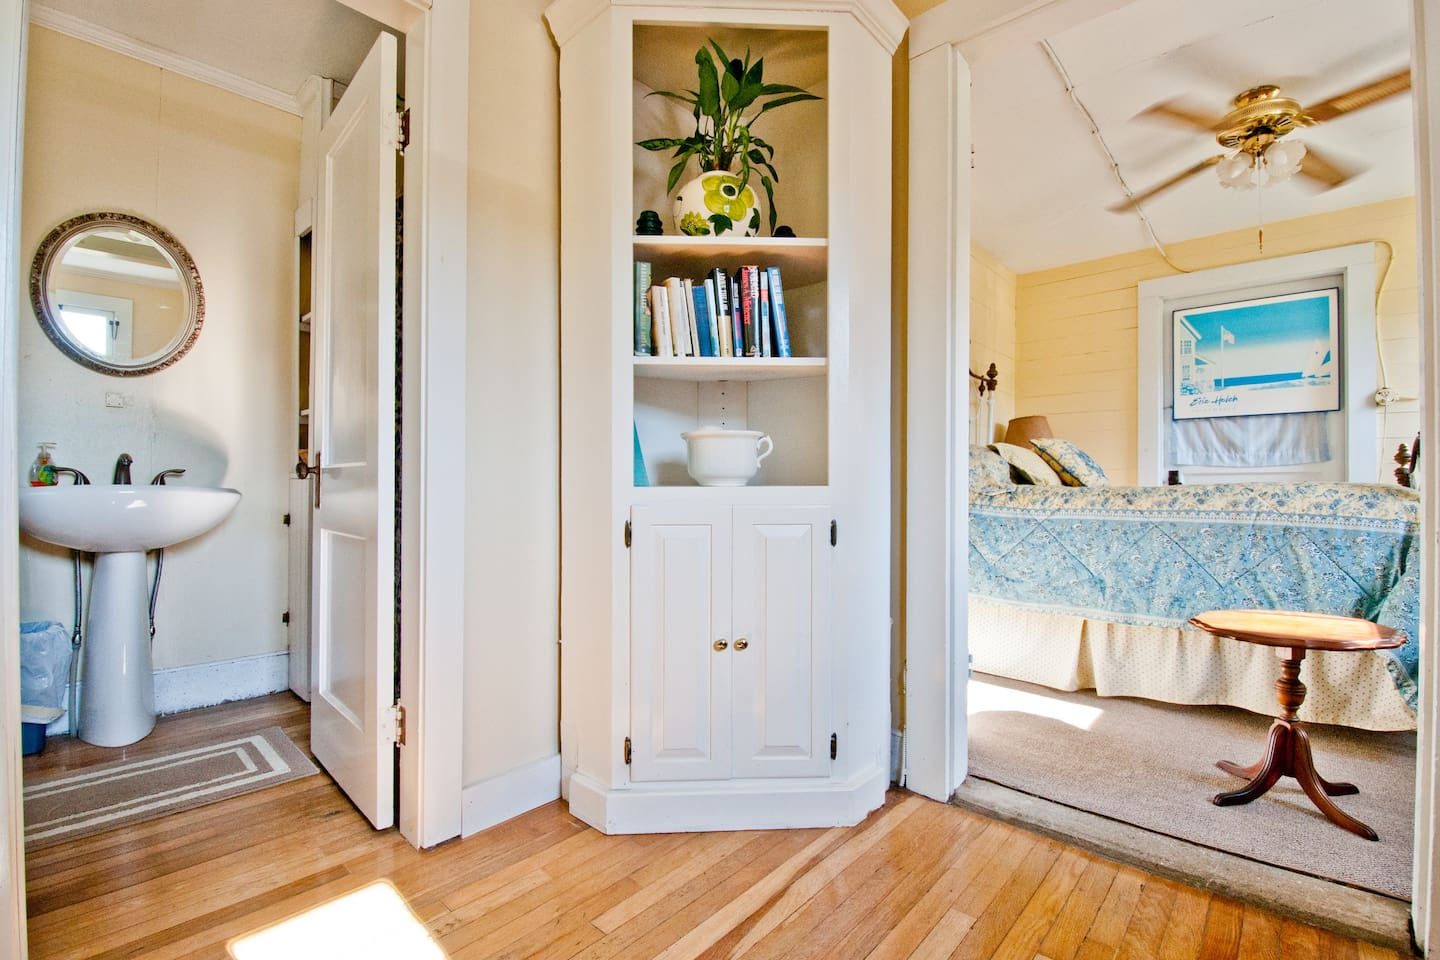 This guest suite is made up of three rooms - a small siting room, a small bedroom, and a full bathroom.